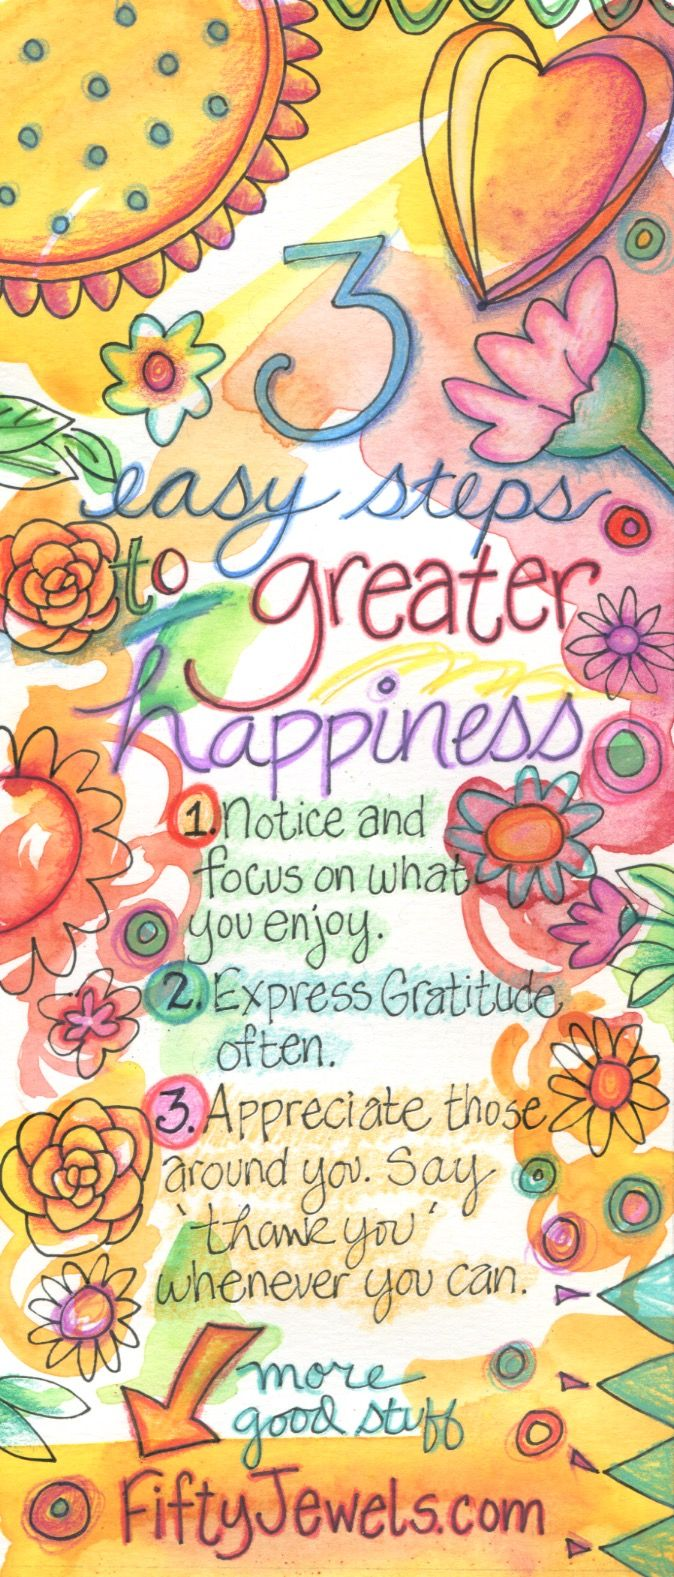 Gratitude super charges your Happiness! Use these easy tricks to add more Happiness into your life! Pin for later and CLICK to find out more!  http://FiftyJewels.com